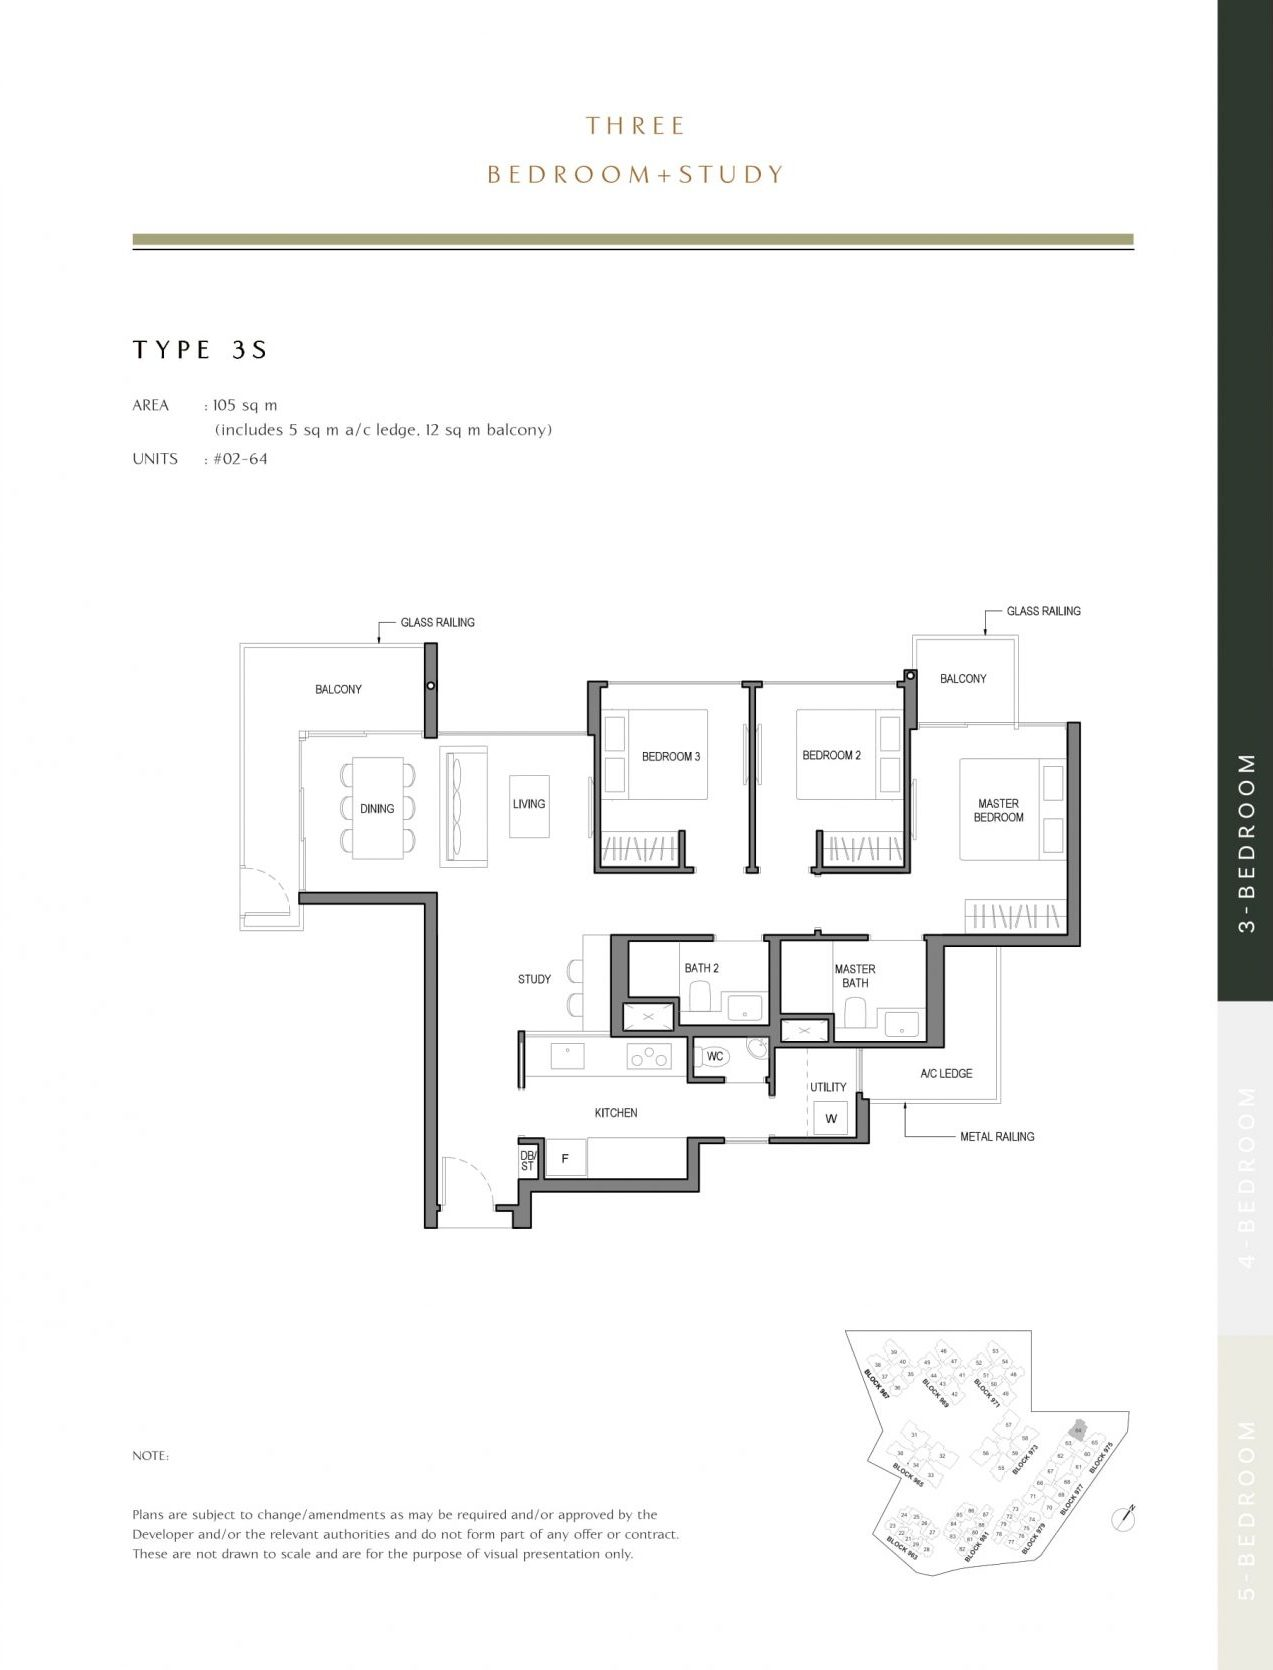 Parc Komo's three-bedroom + study type